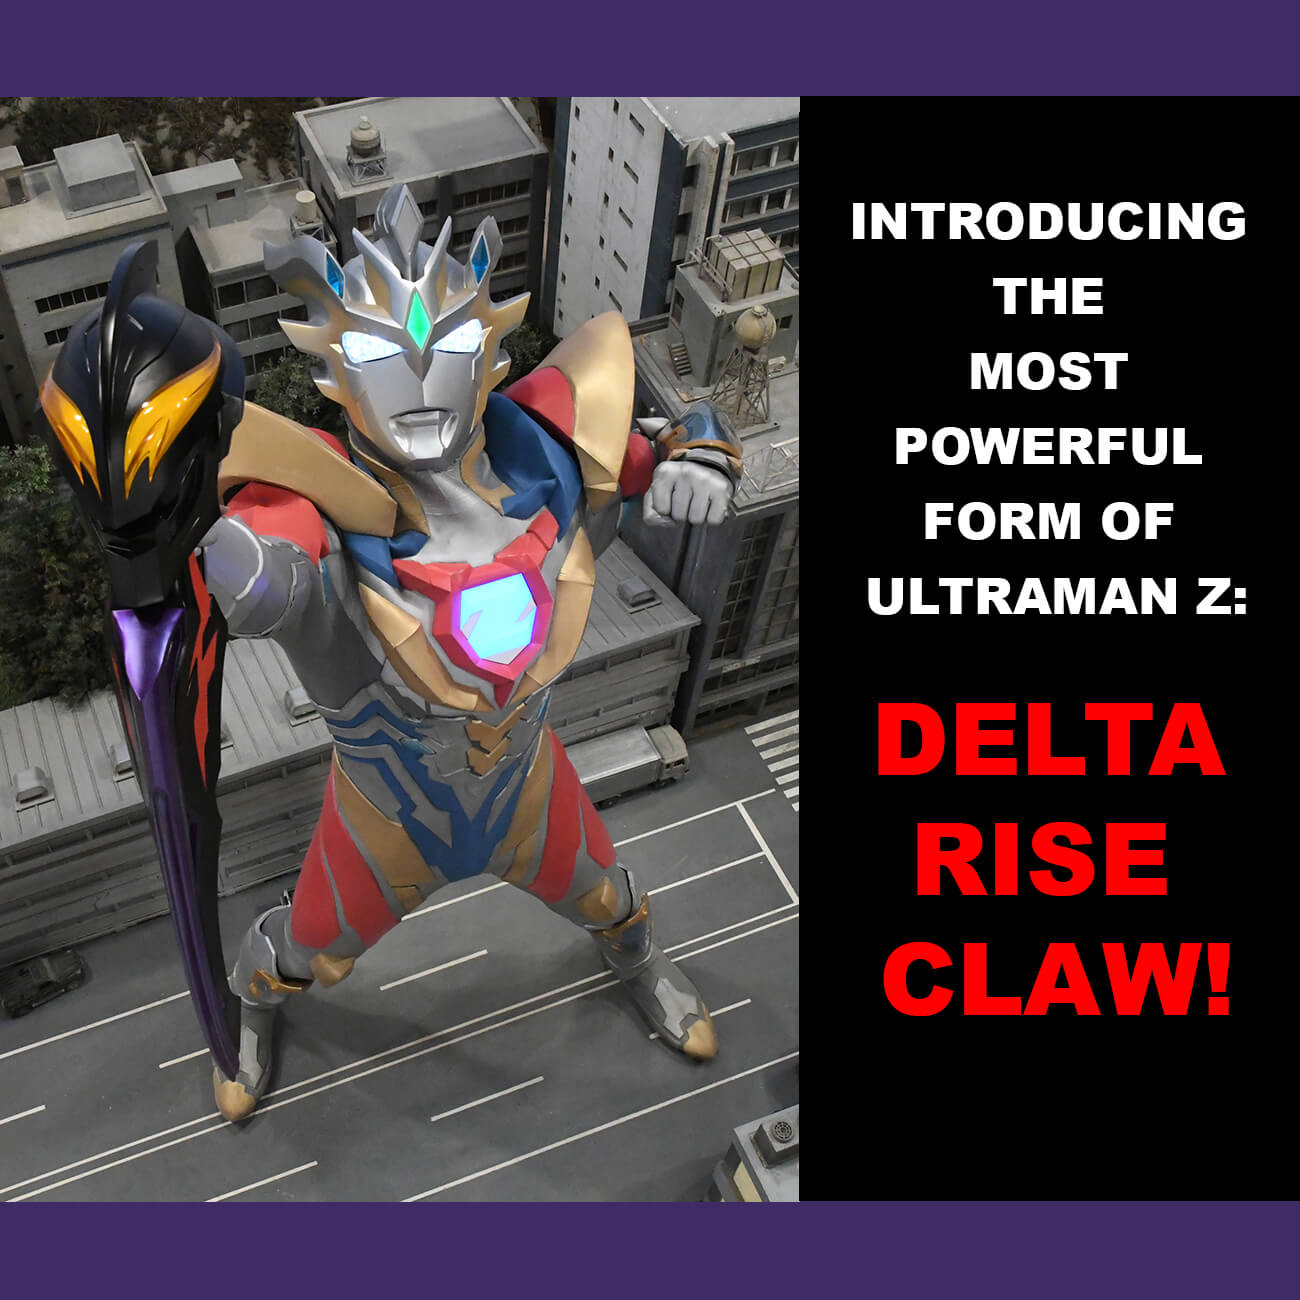 INTRODUCING THE MOST POWERFUL FORM OFULTRAMAN Z: DELTA RISE CLAW!